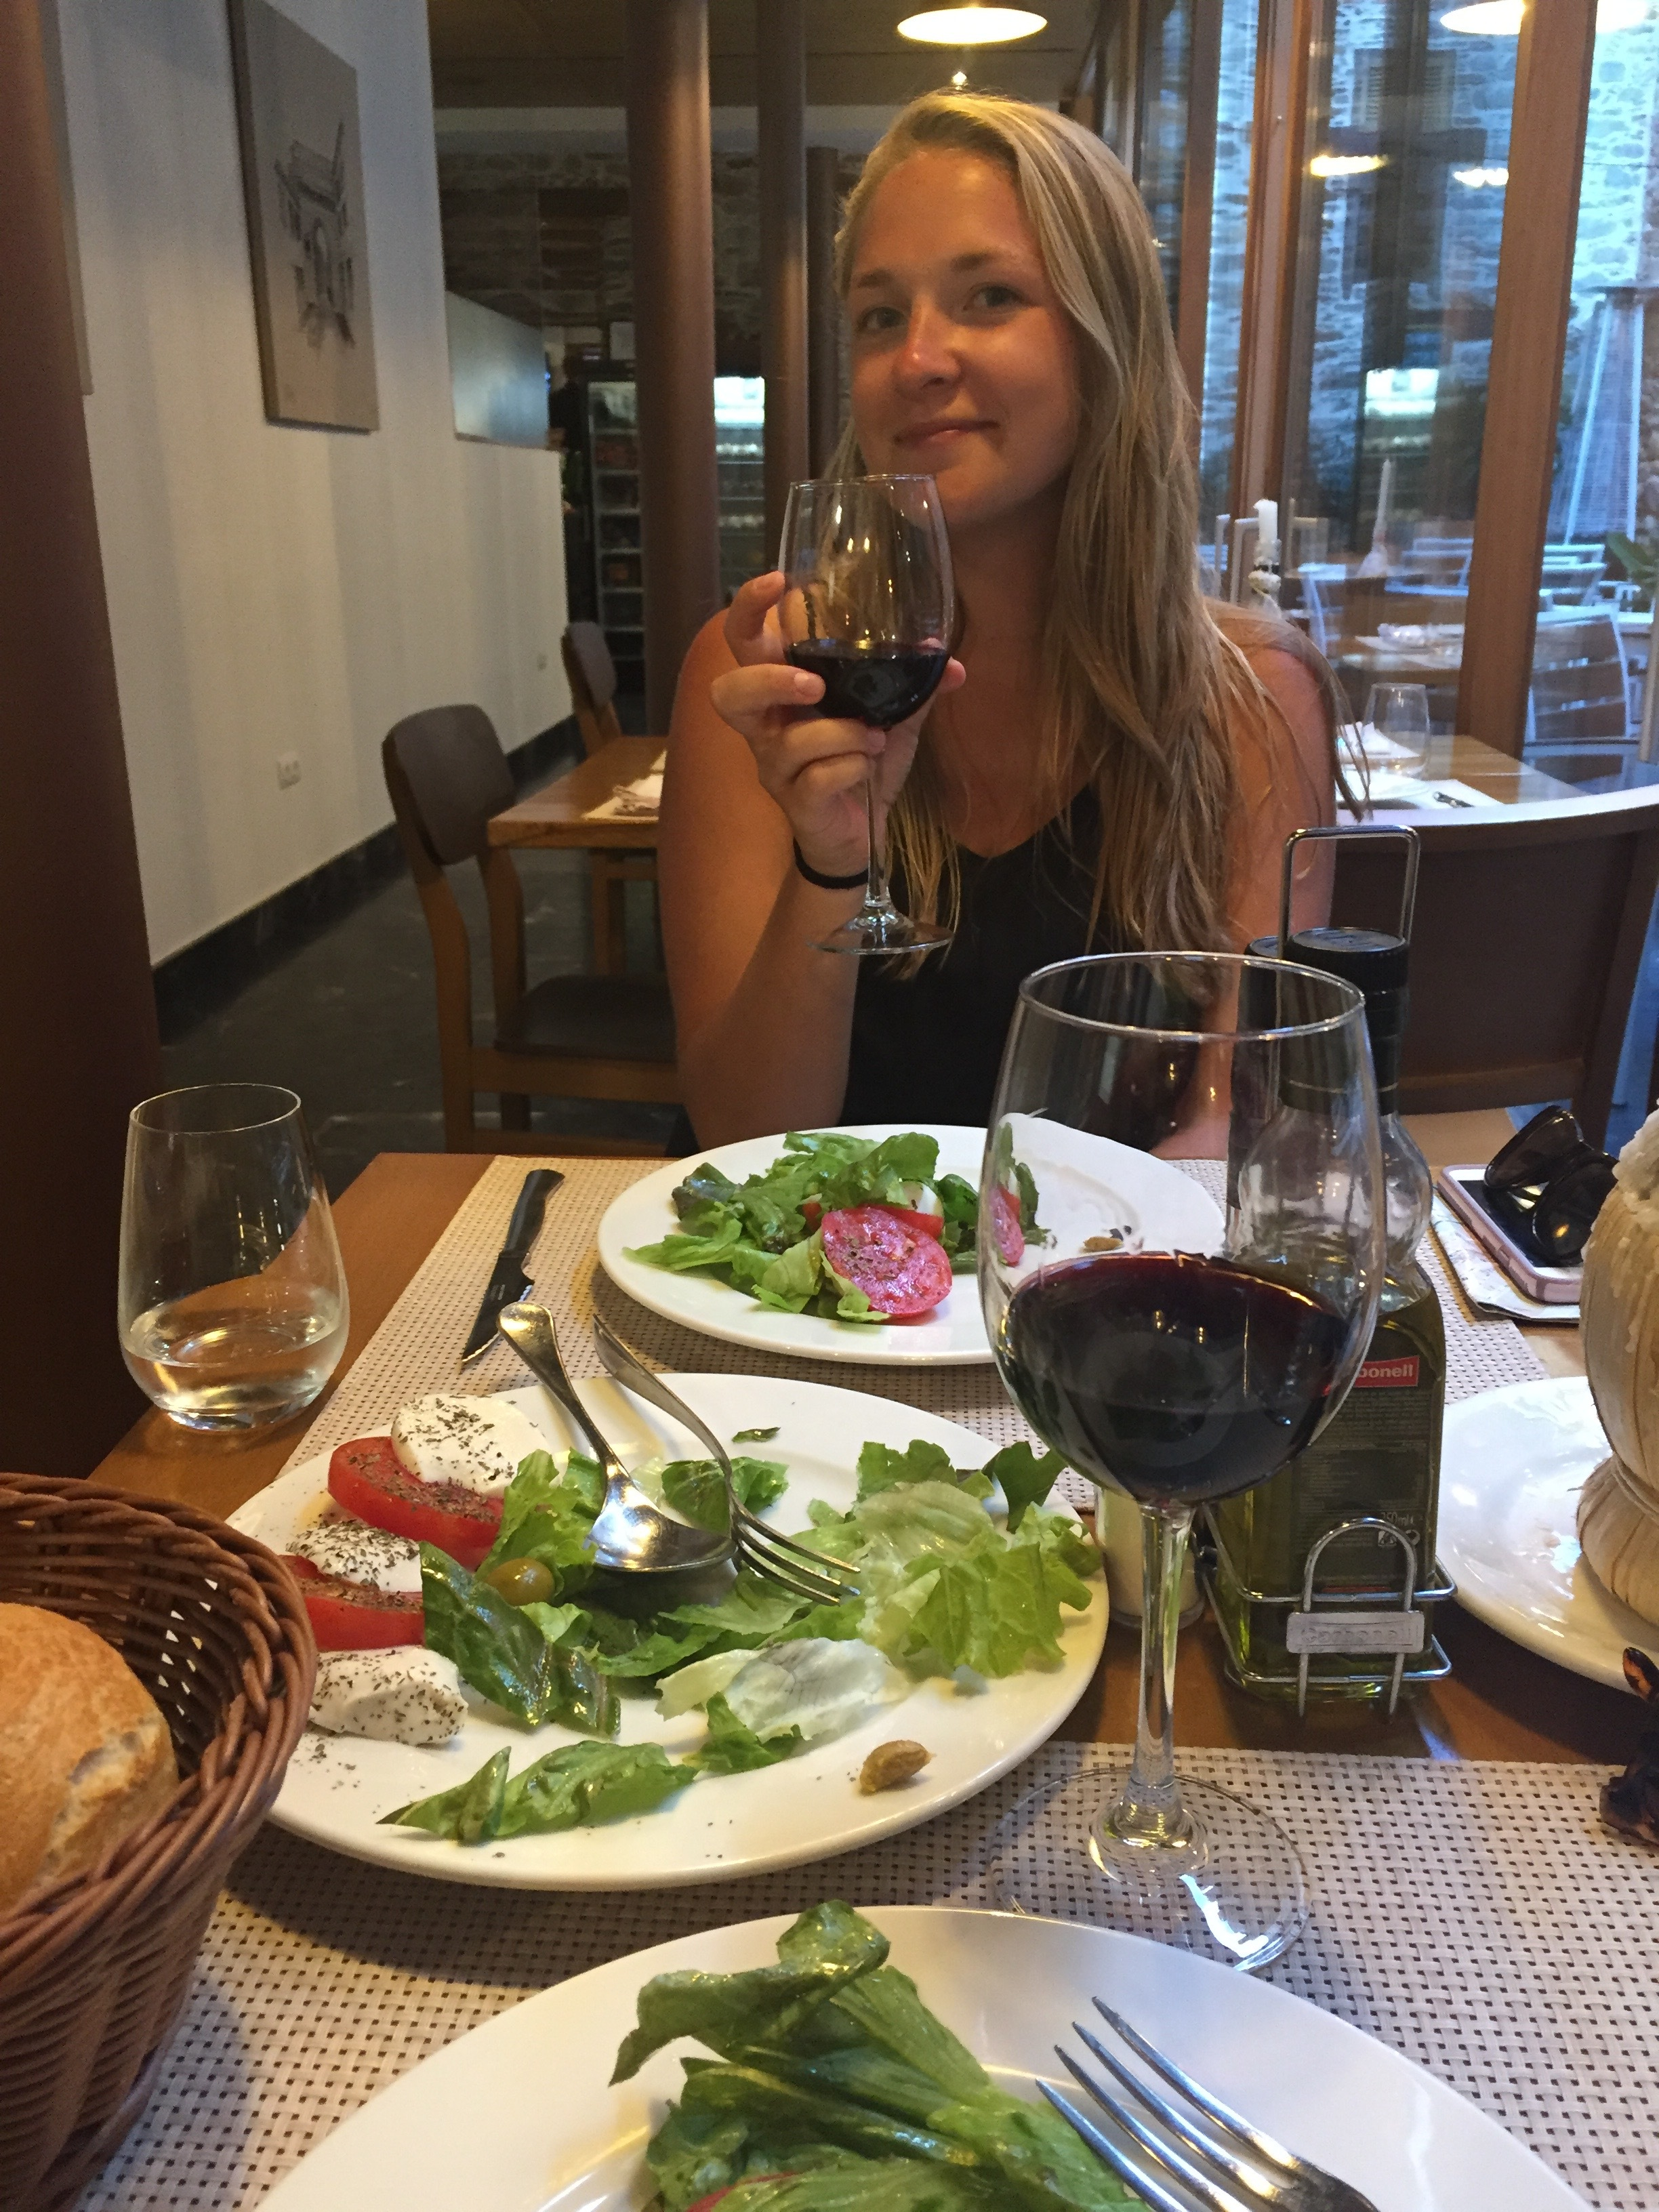 We felt spoiled eating at a fancy restaurant. Even still, the red wine was cheaper than the bottled water.